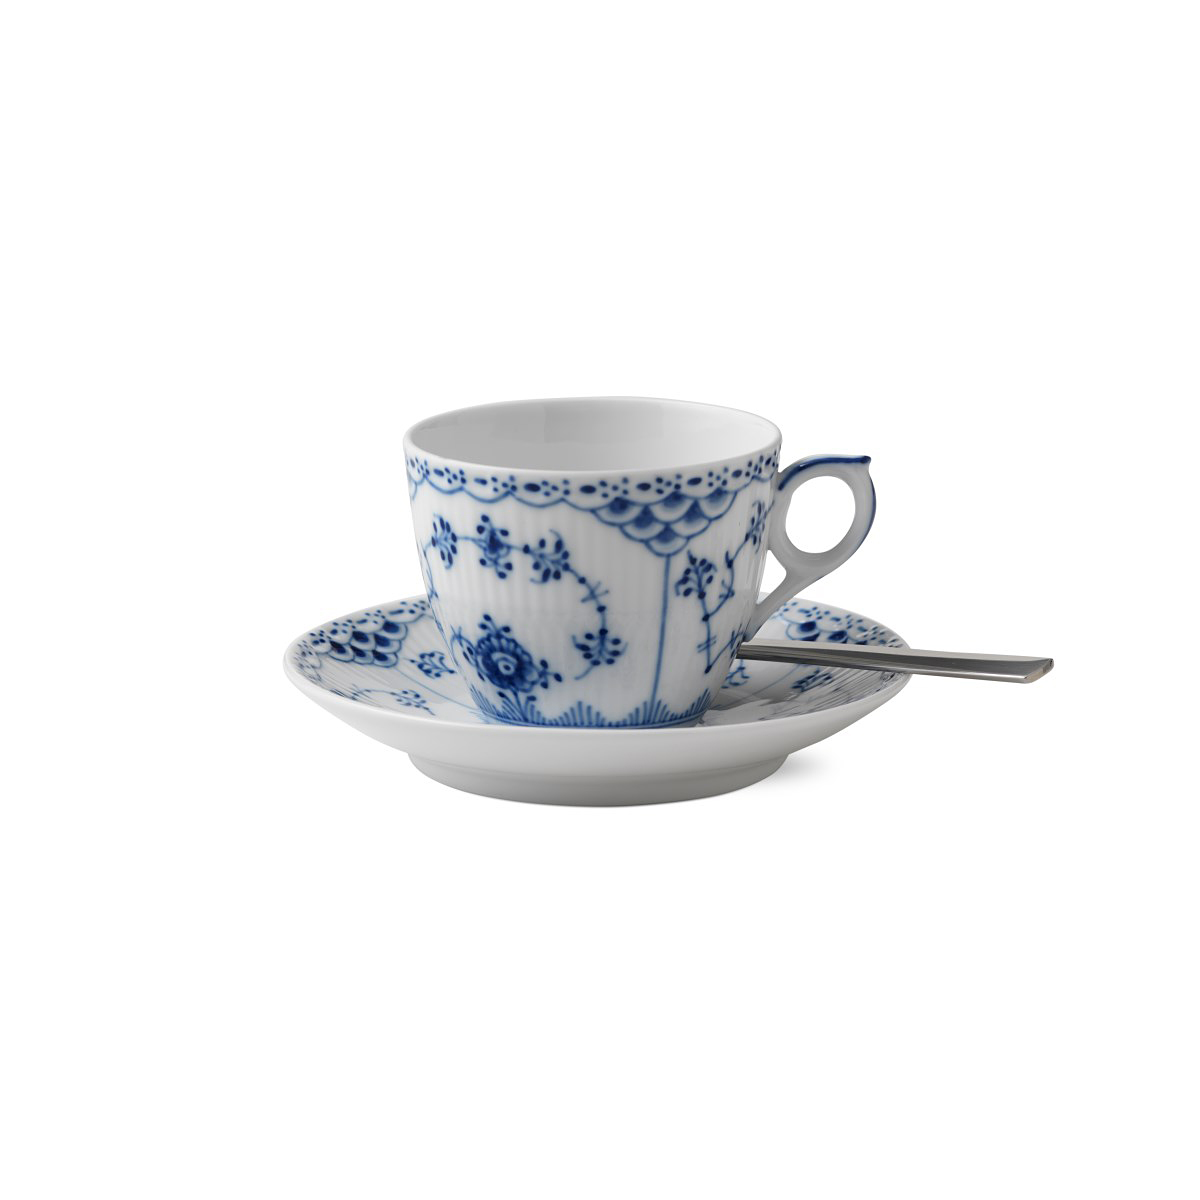 Royal Copenhagen, Blue Fluted Half Lace Coffee Cup and Saucer 5.75oz.